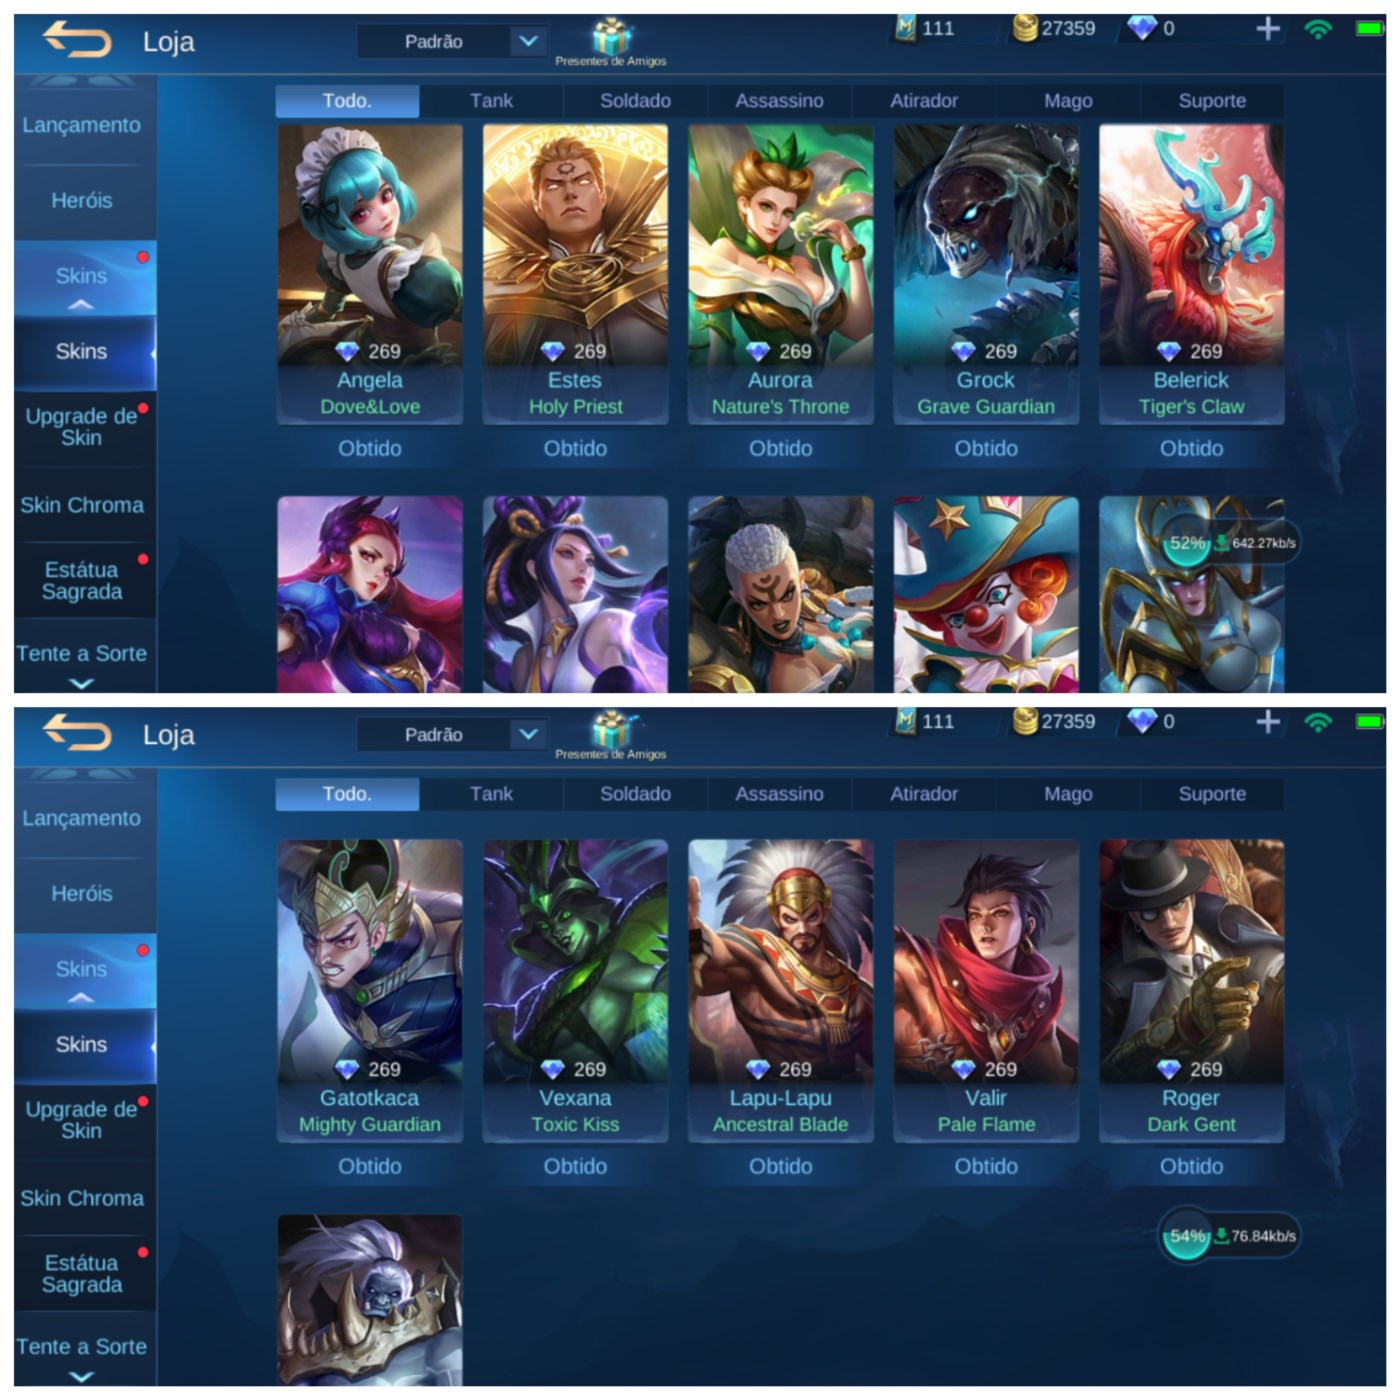 Conta mobile legends lvl 64 com 53 herois e 56 skins...